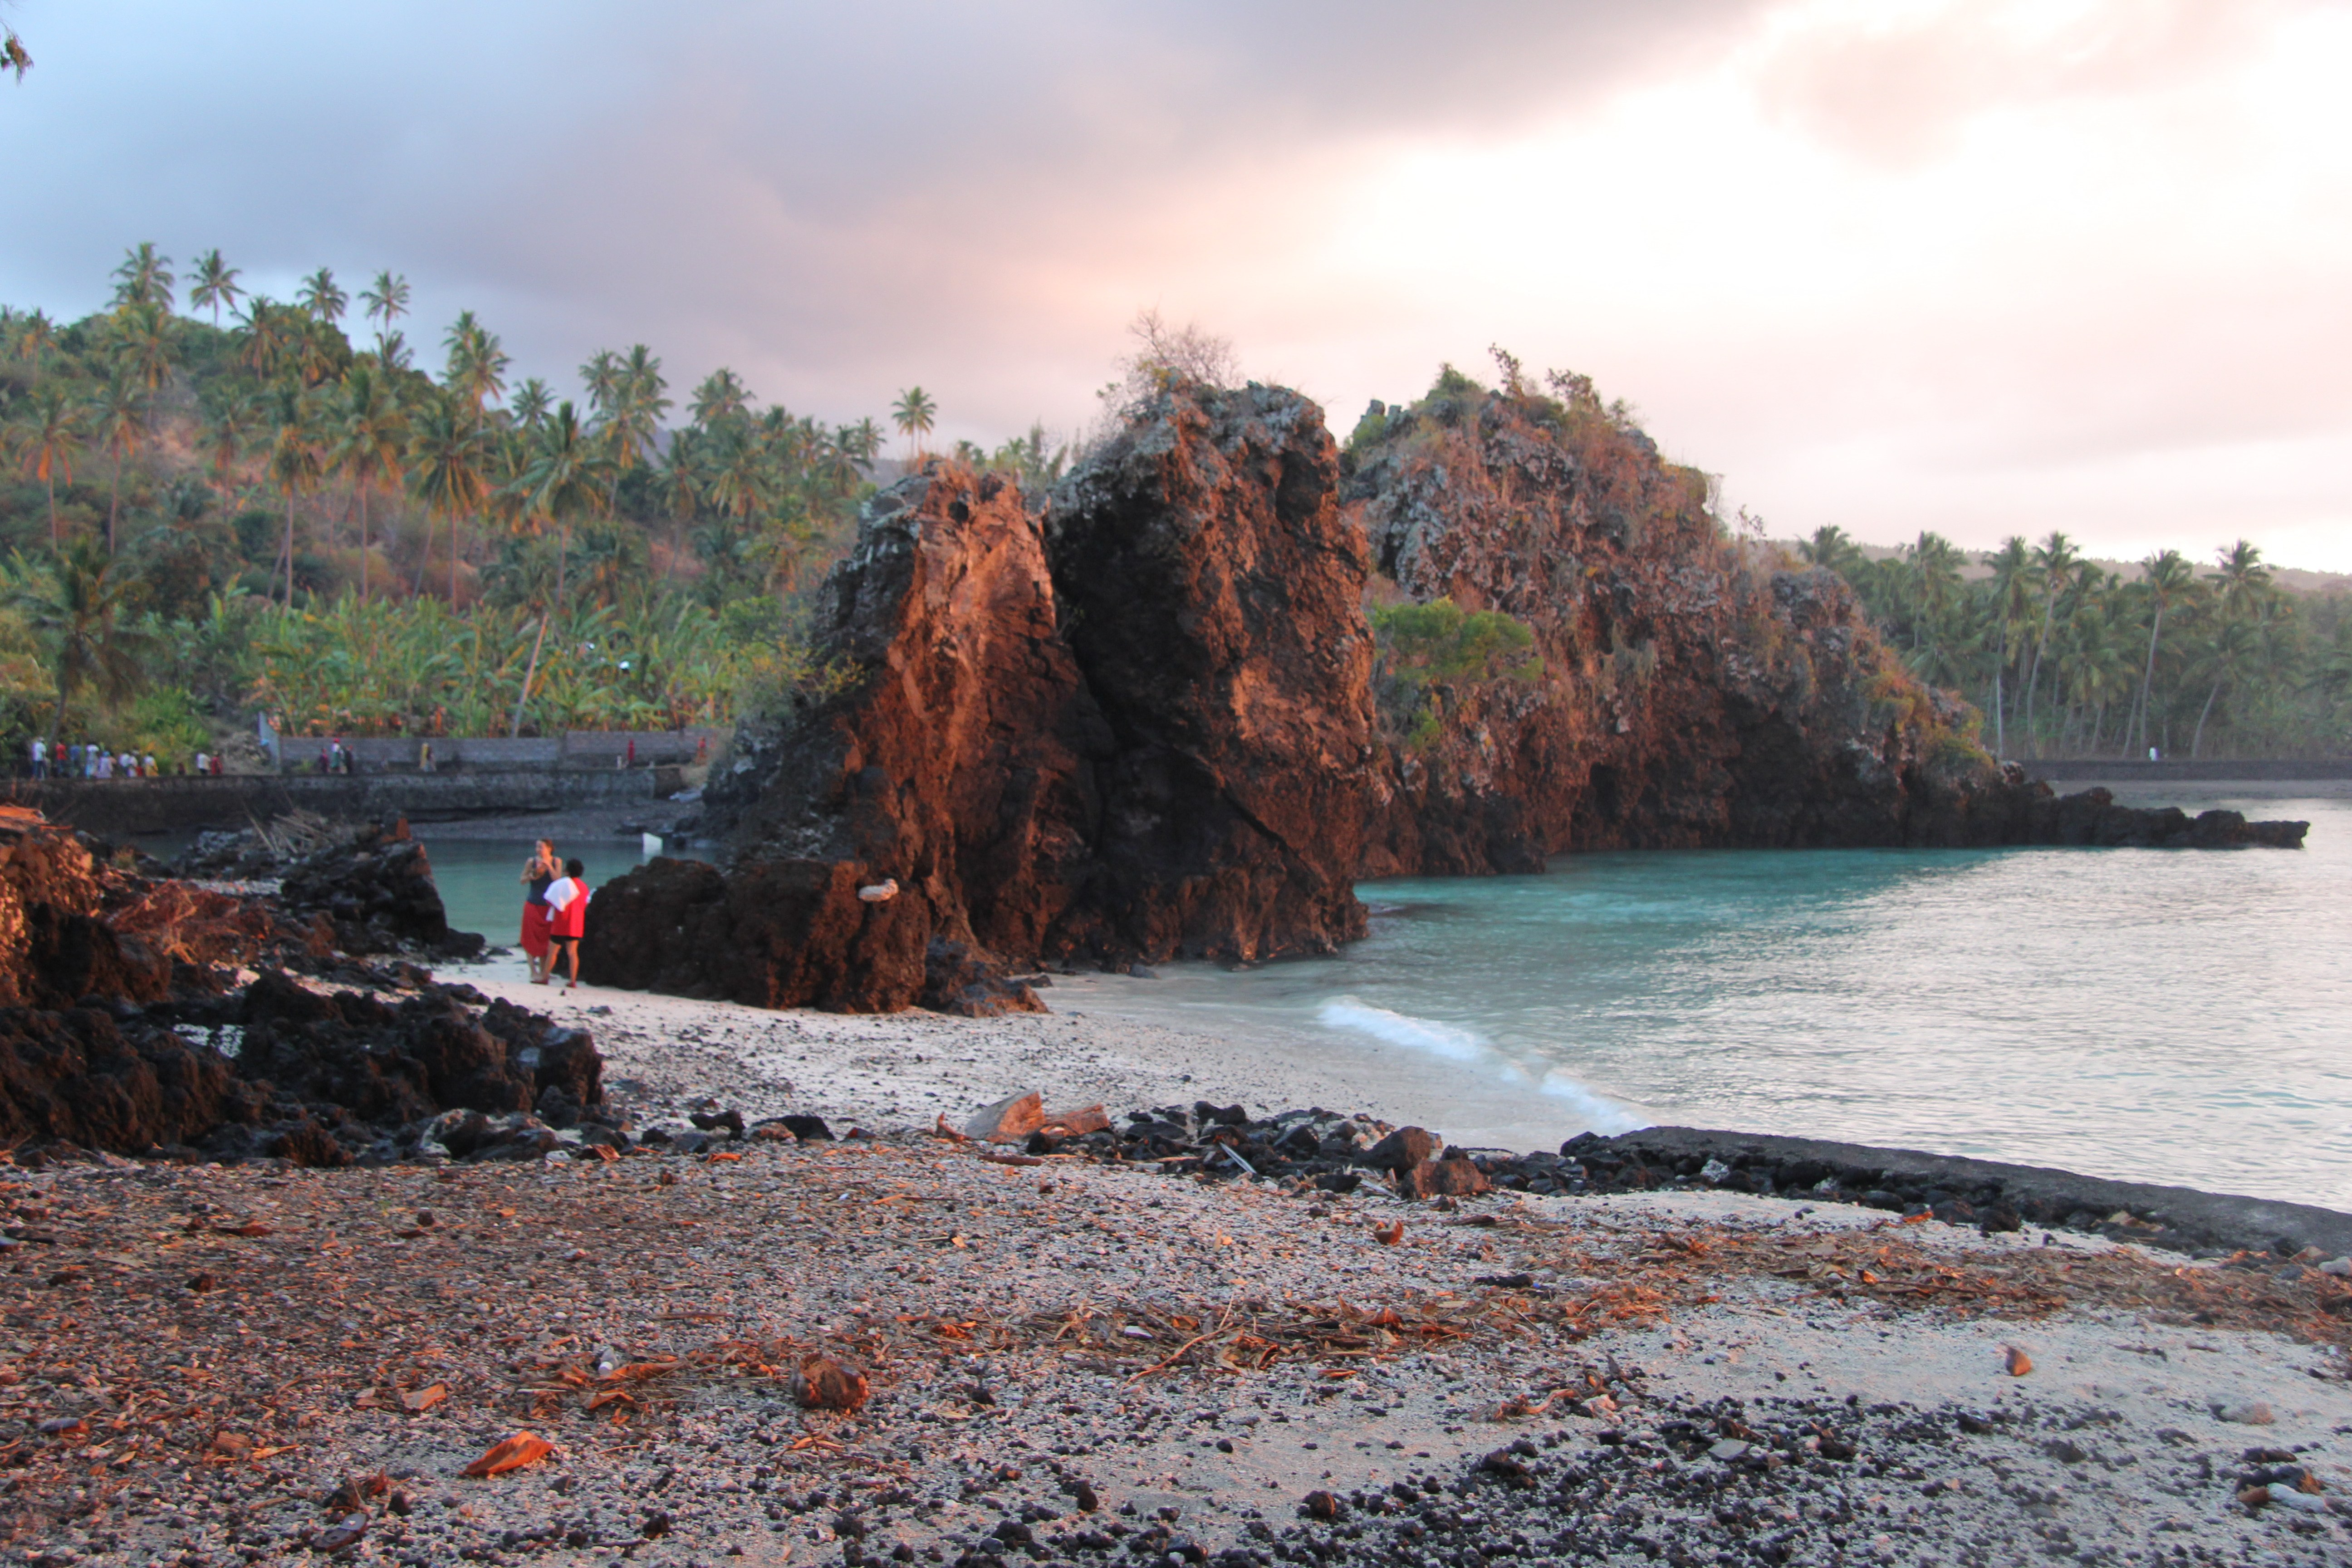 Comoros Islands: tropical charm off the beaten path